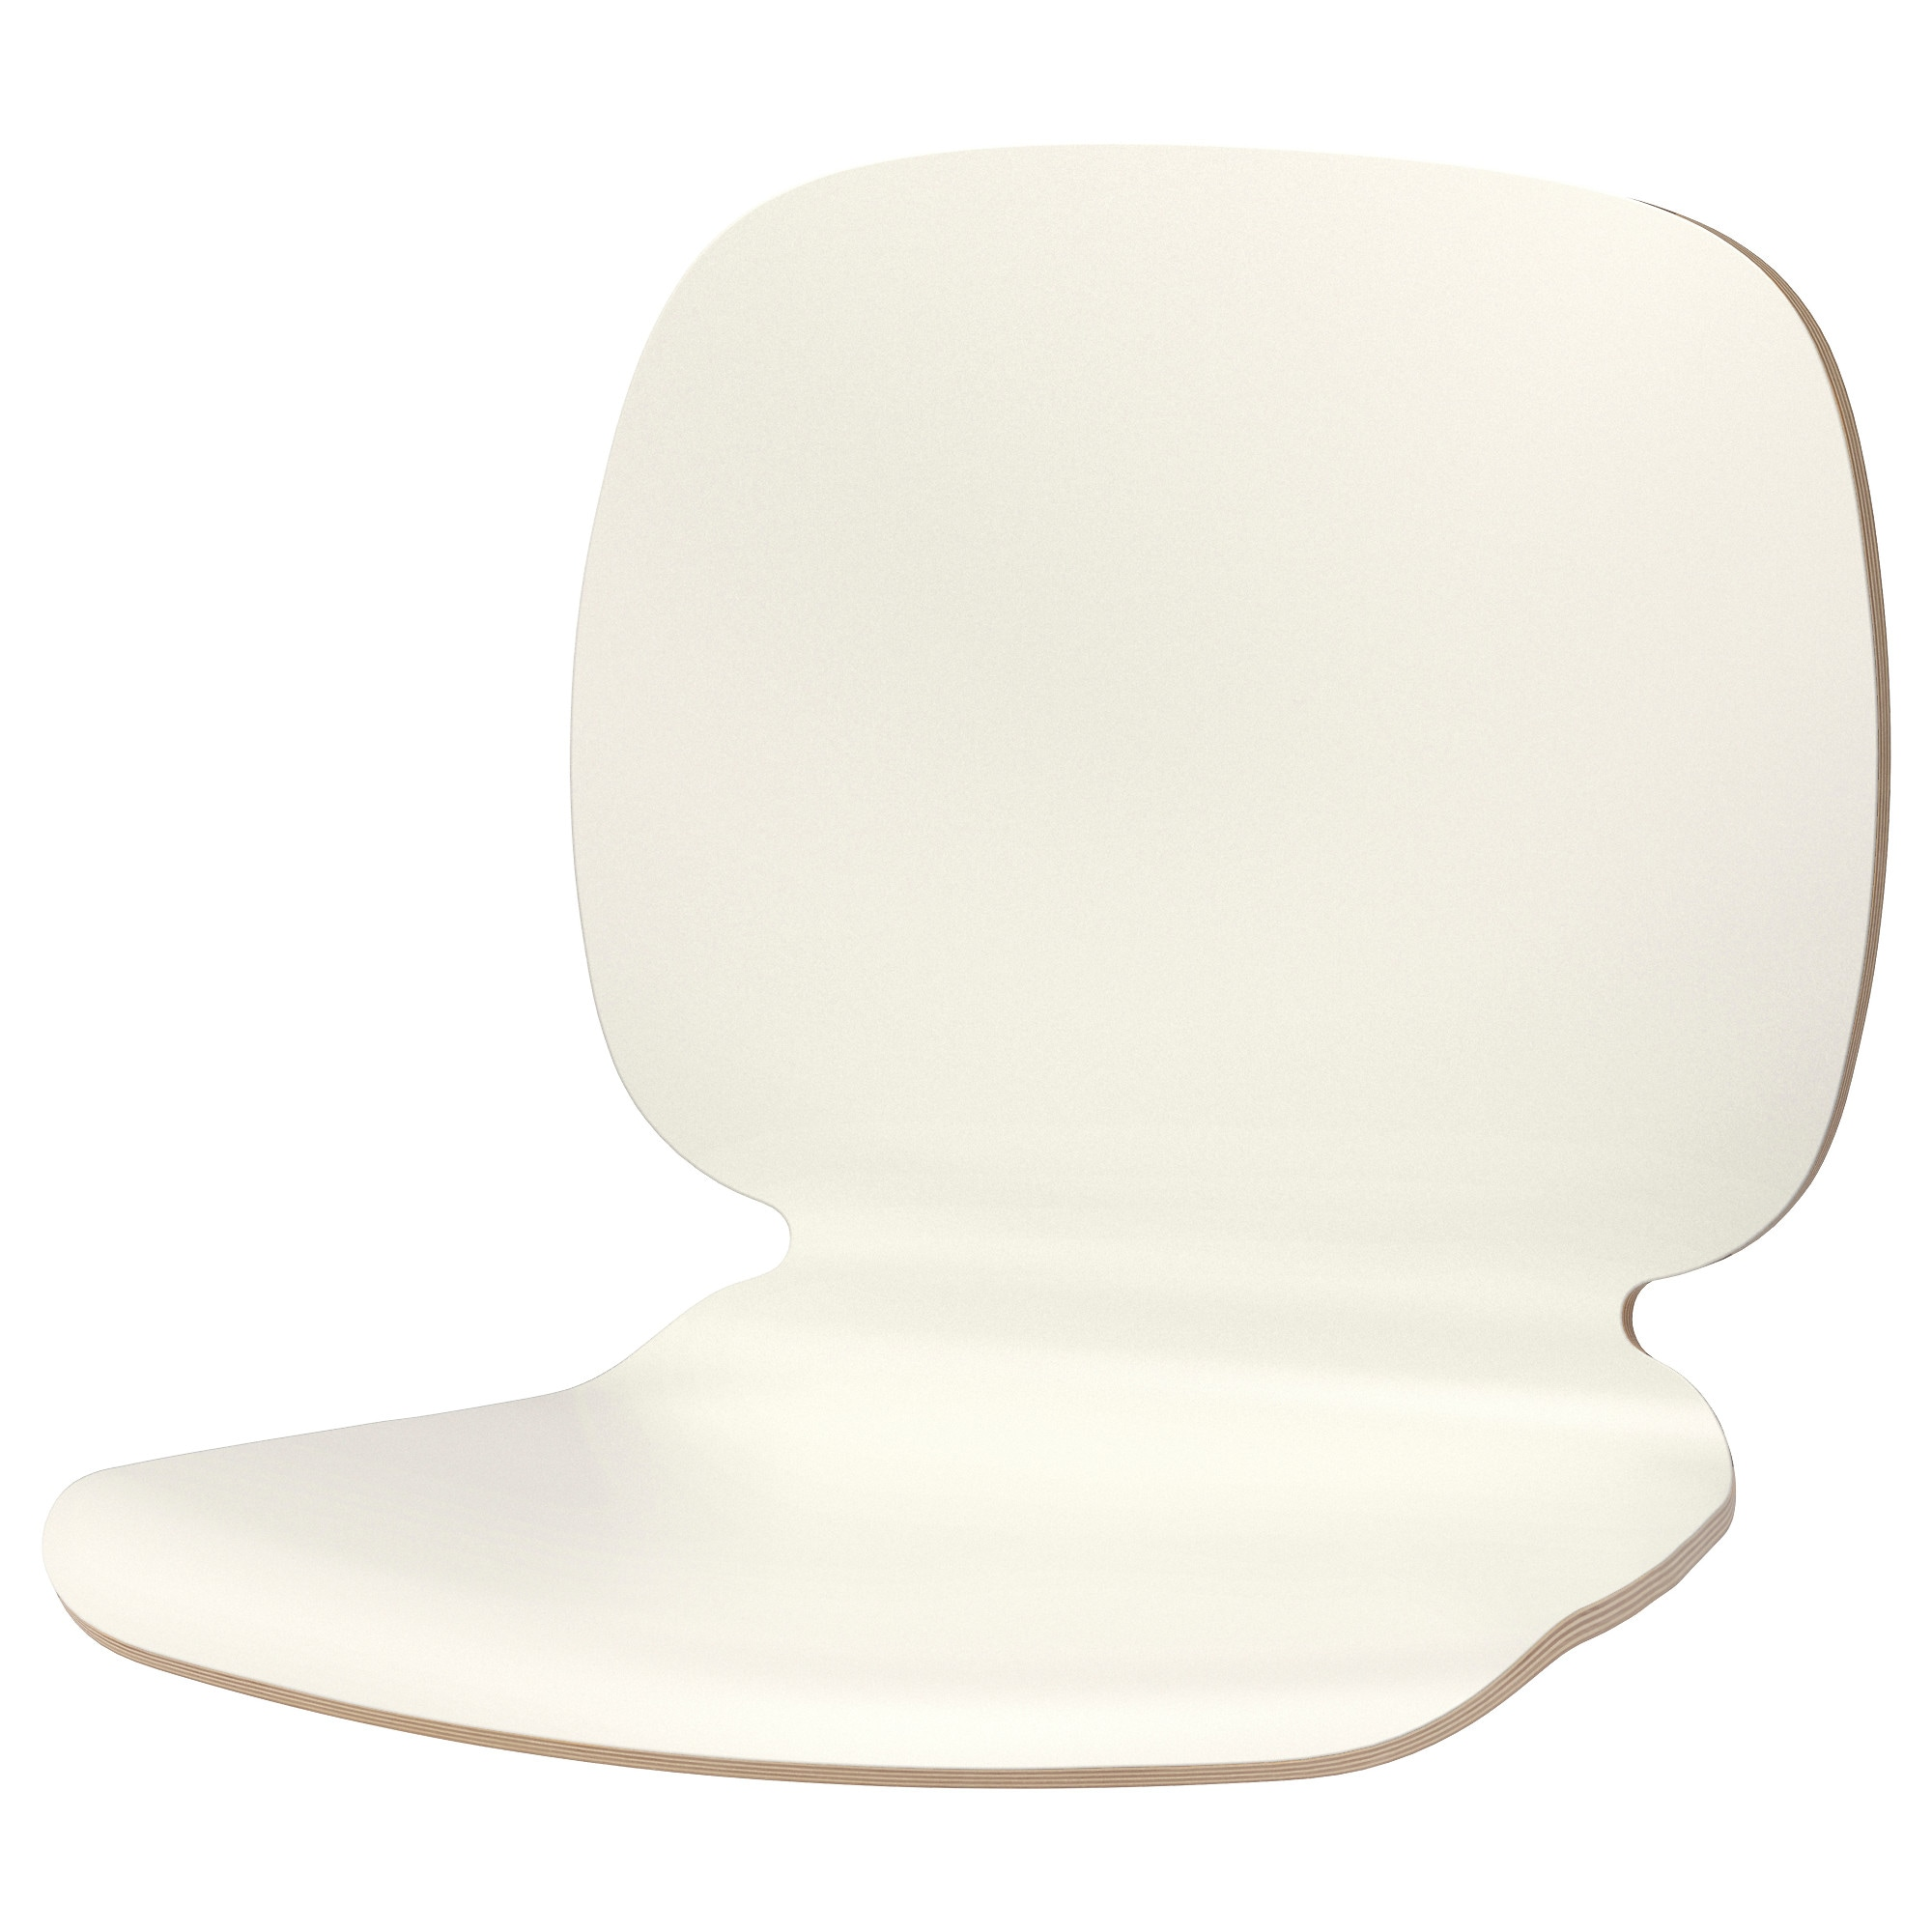 SVENBERTIL Seat Shell, White Tested For: 243 Lb Height: 15 3/8